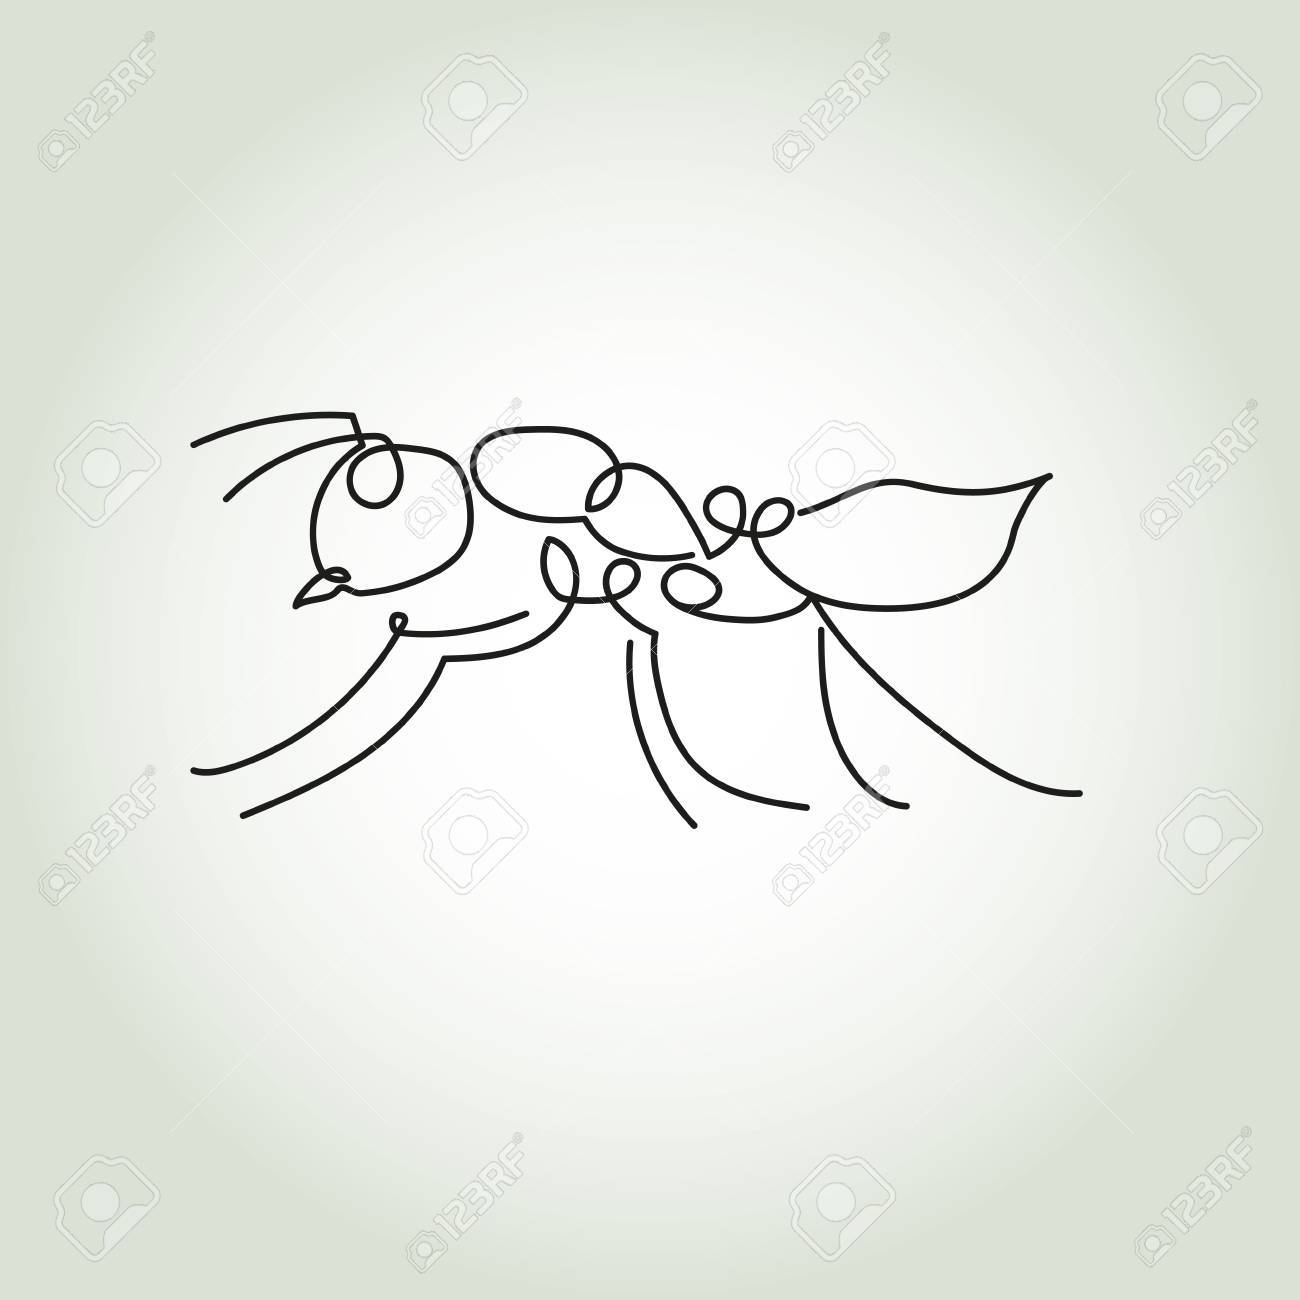 1300x1300 Ant Line In Minimal Style Vector Royalty Free Cliparts, Vectors